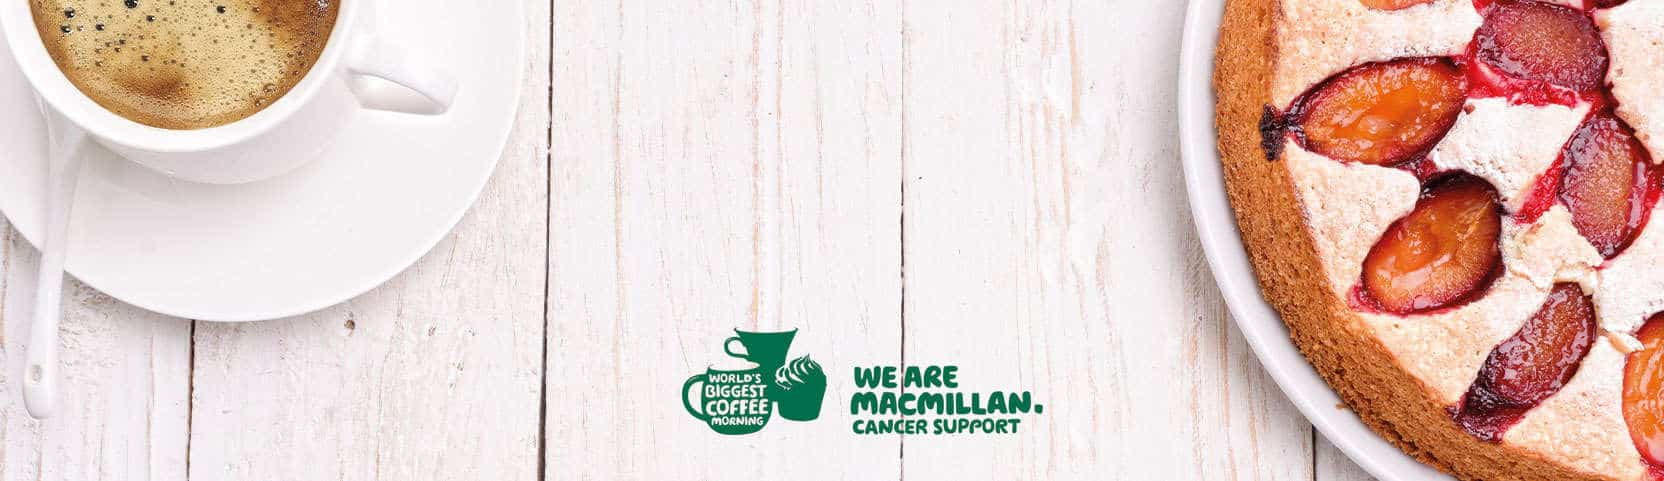 Macmillan Branded Coffee Morning Banner